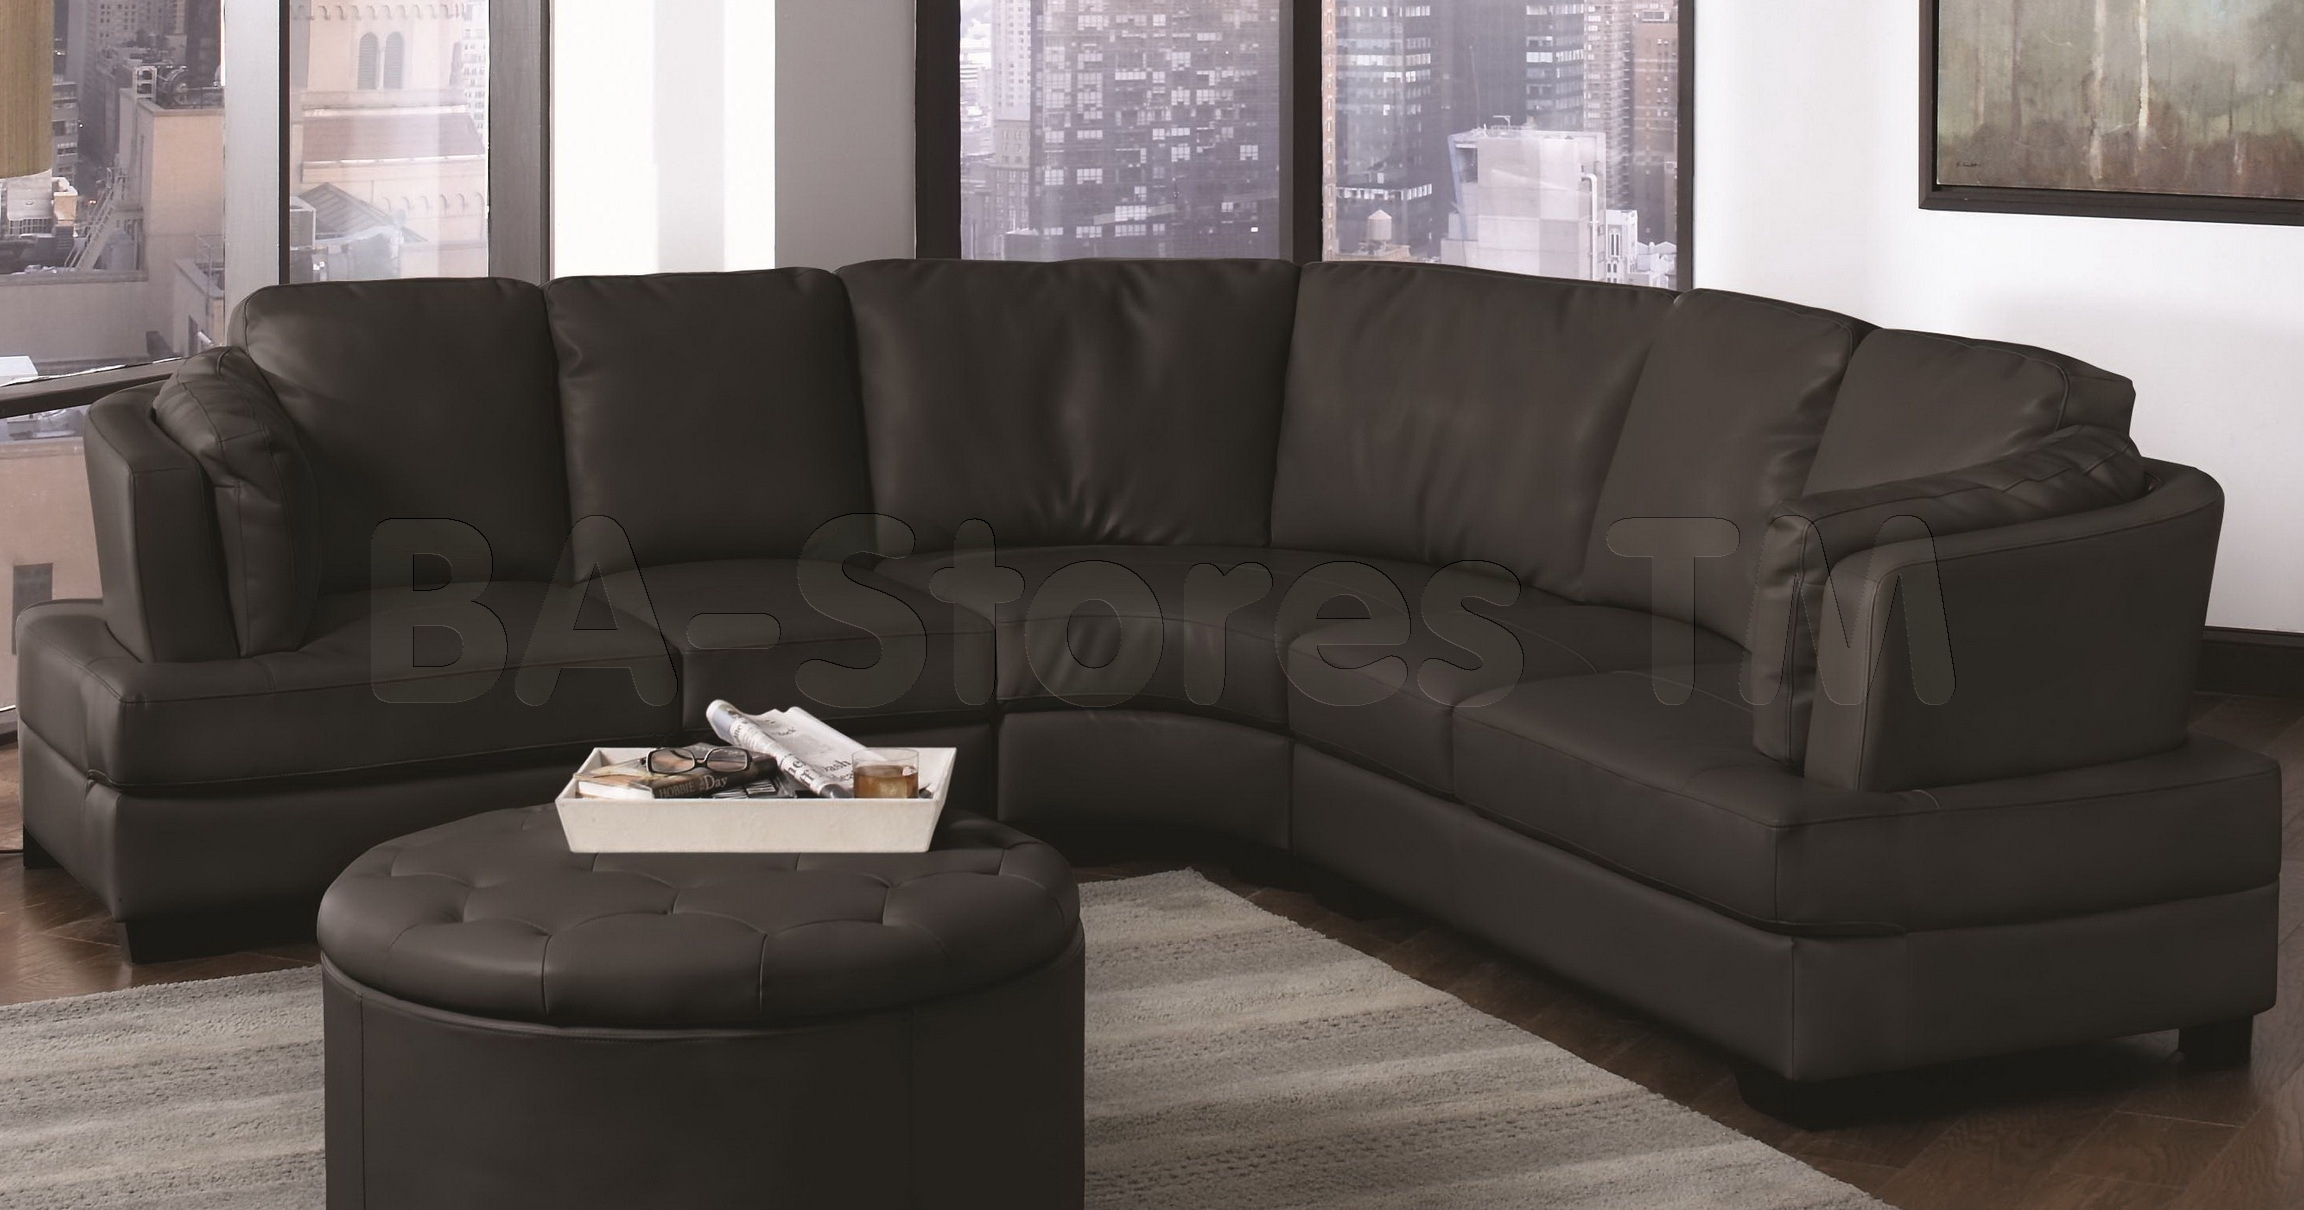 Trend Curved Sectional Sofa 99 On Contemporary Sofa Inspiration With Intended For Rounded Sofas (Image 10 of 10)